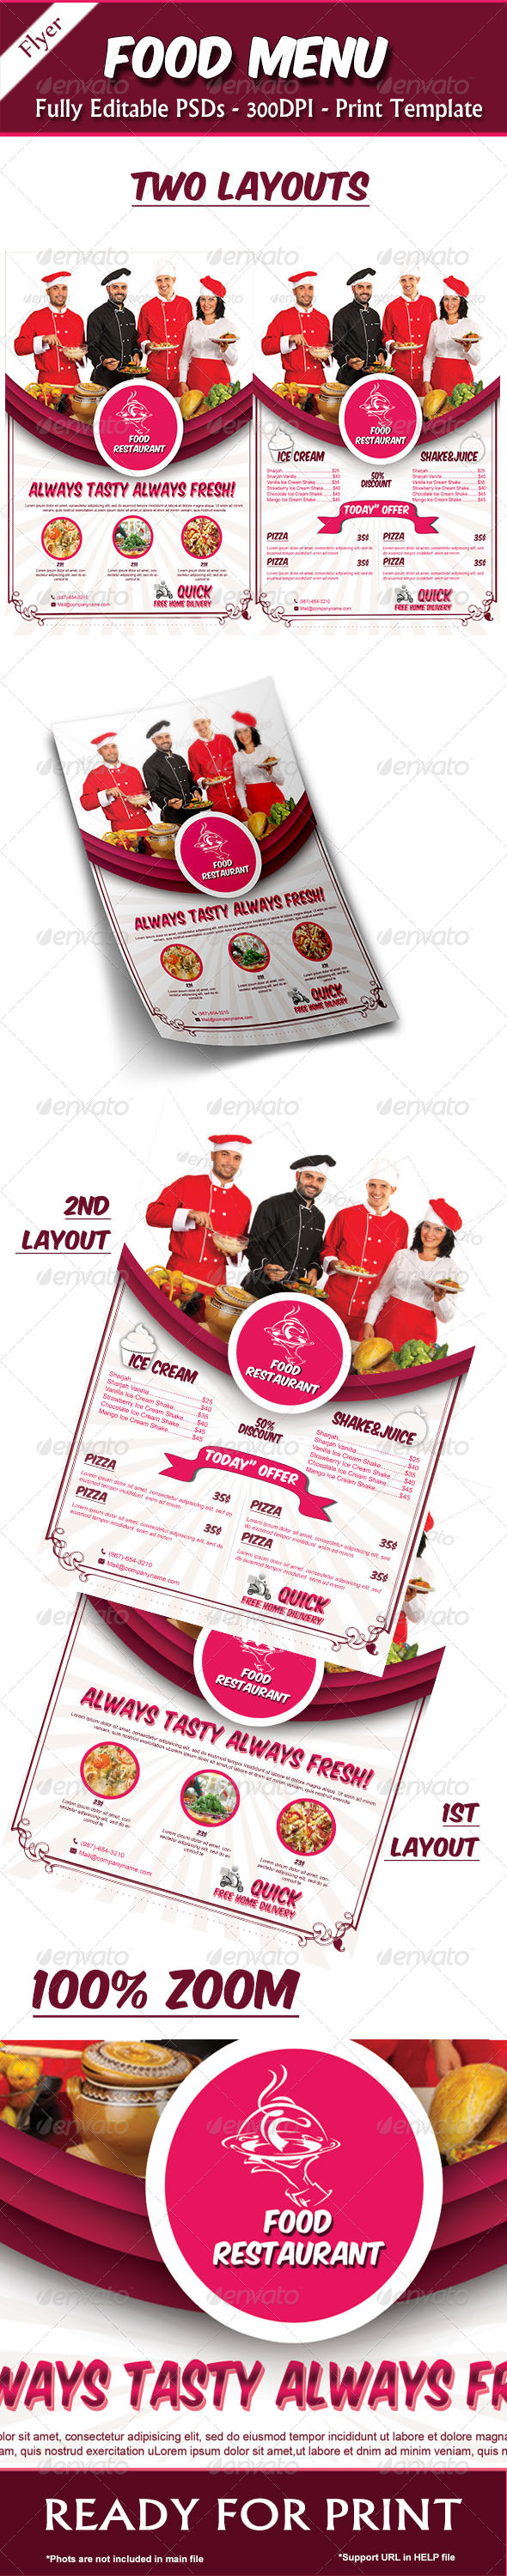 GraphicRiver Food Menu Tamplate 7701219